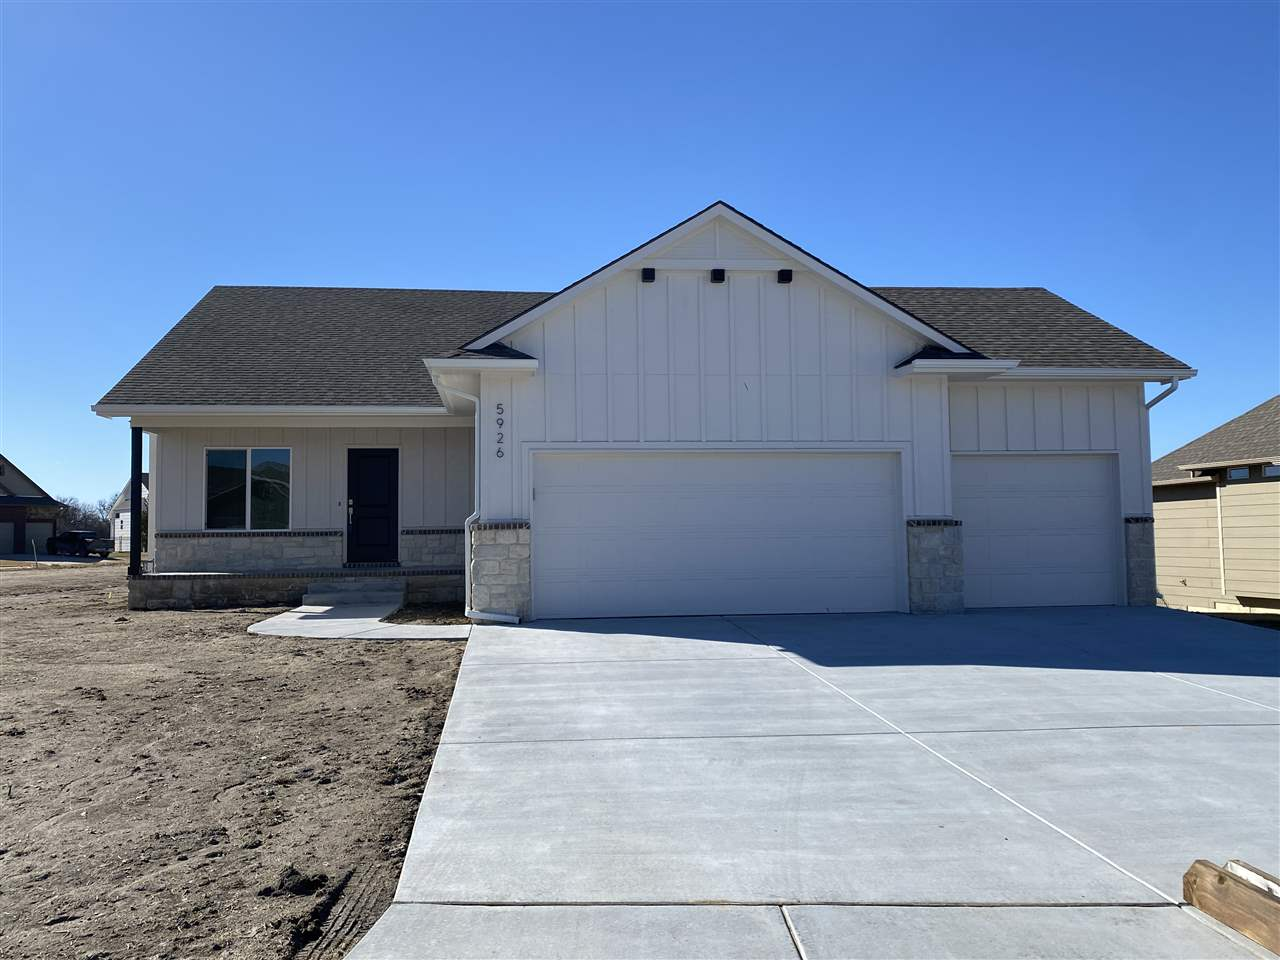 Brand new home under $300k!!! This home is sure to wow! Spacious 4 bedroom, 3 full bath, 3 car garag